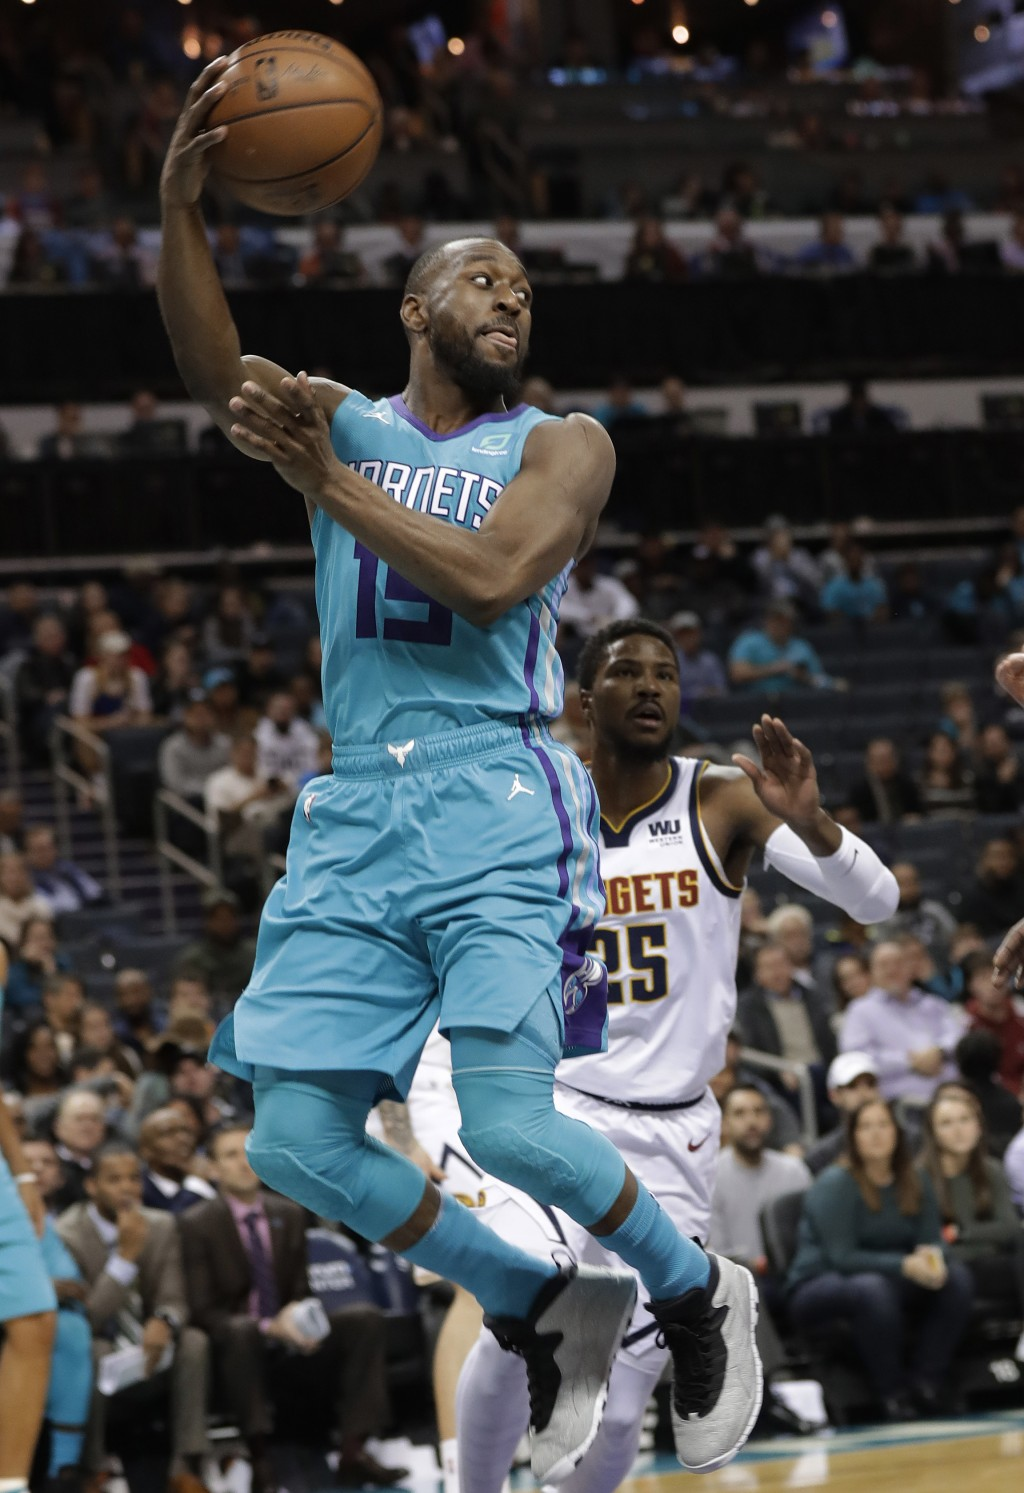 Charlotte Hornets' Kemba Walker (15) looks to pass the ball as Denver Nuggets' Malik Beasley (25) watches during the first half of an NBA basketball g